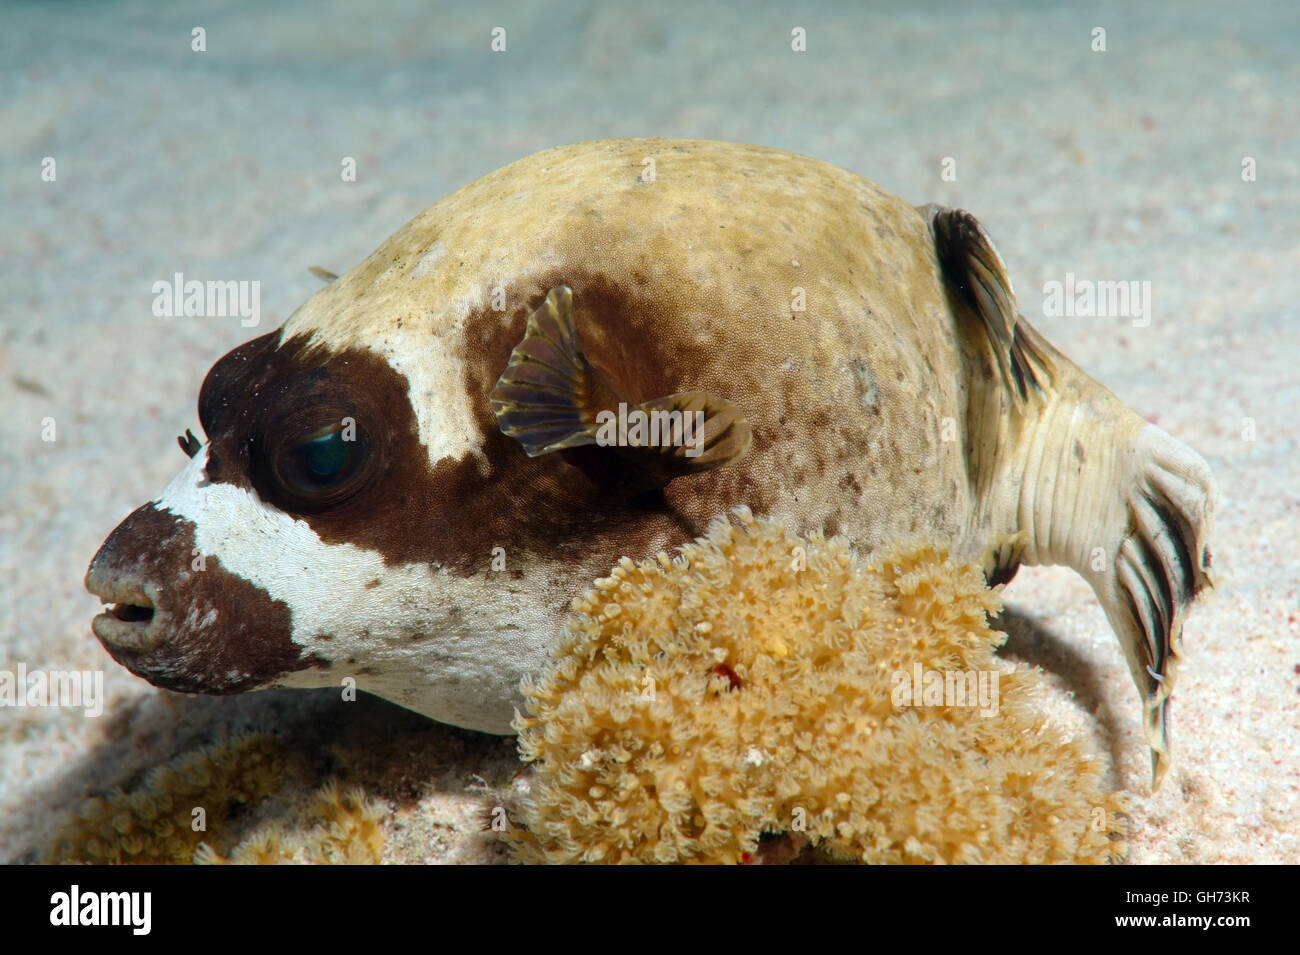 puffer fish africa stockfotos puffer fish africa bilder alamy. Black Bedroom Furniture Sets. Home Design Ideas